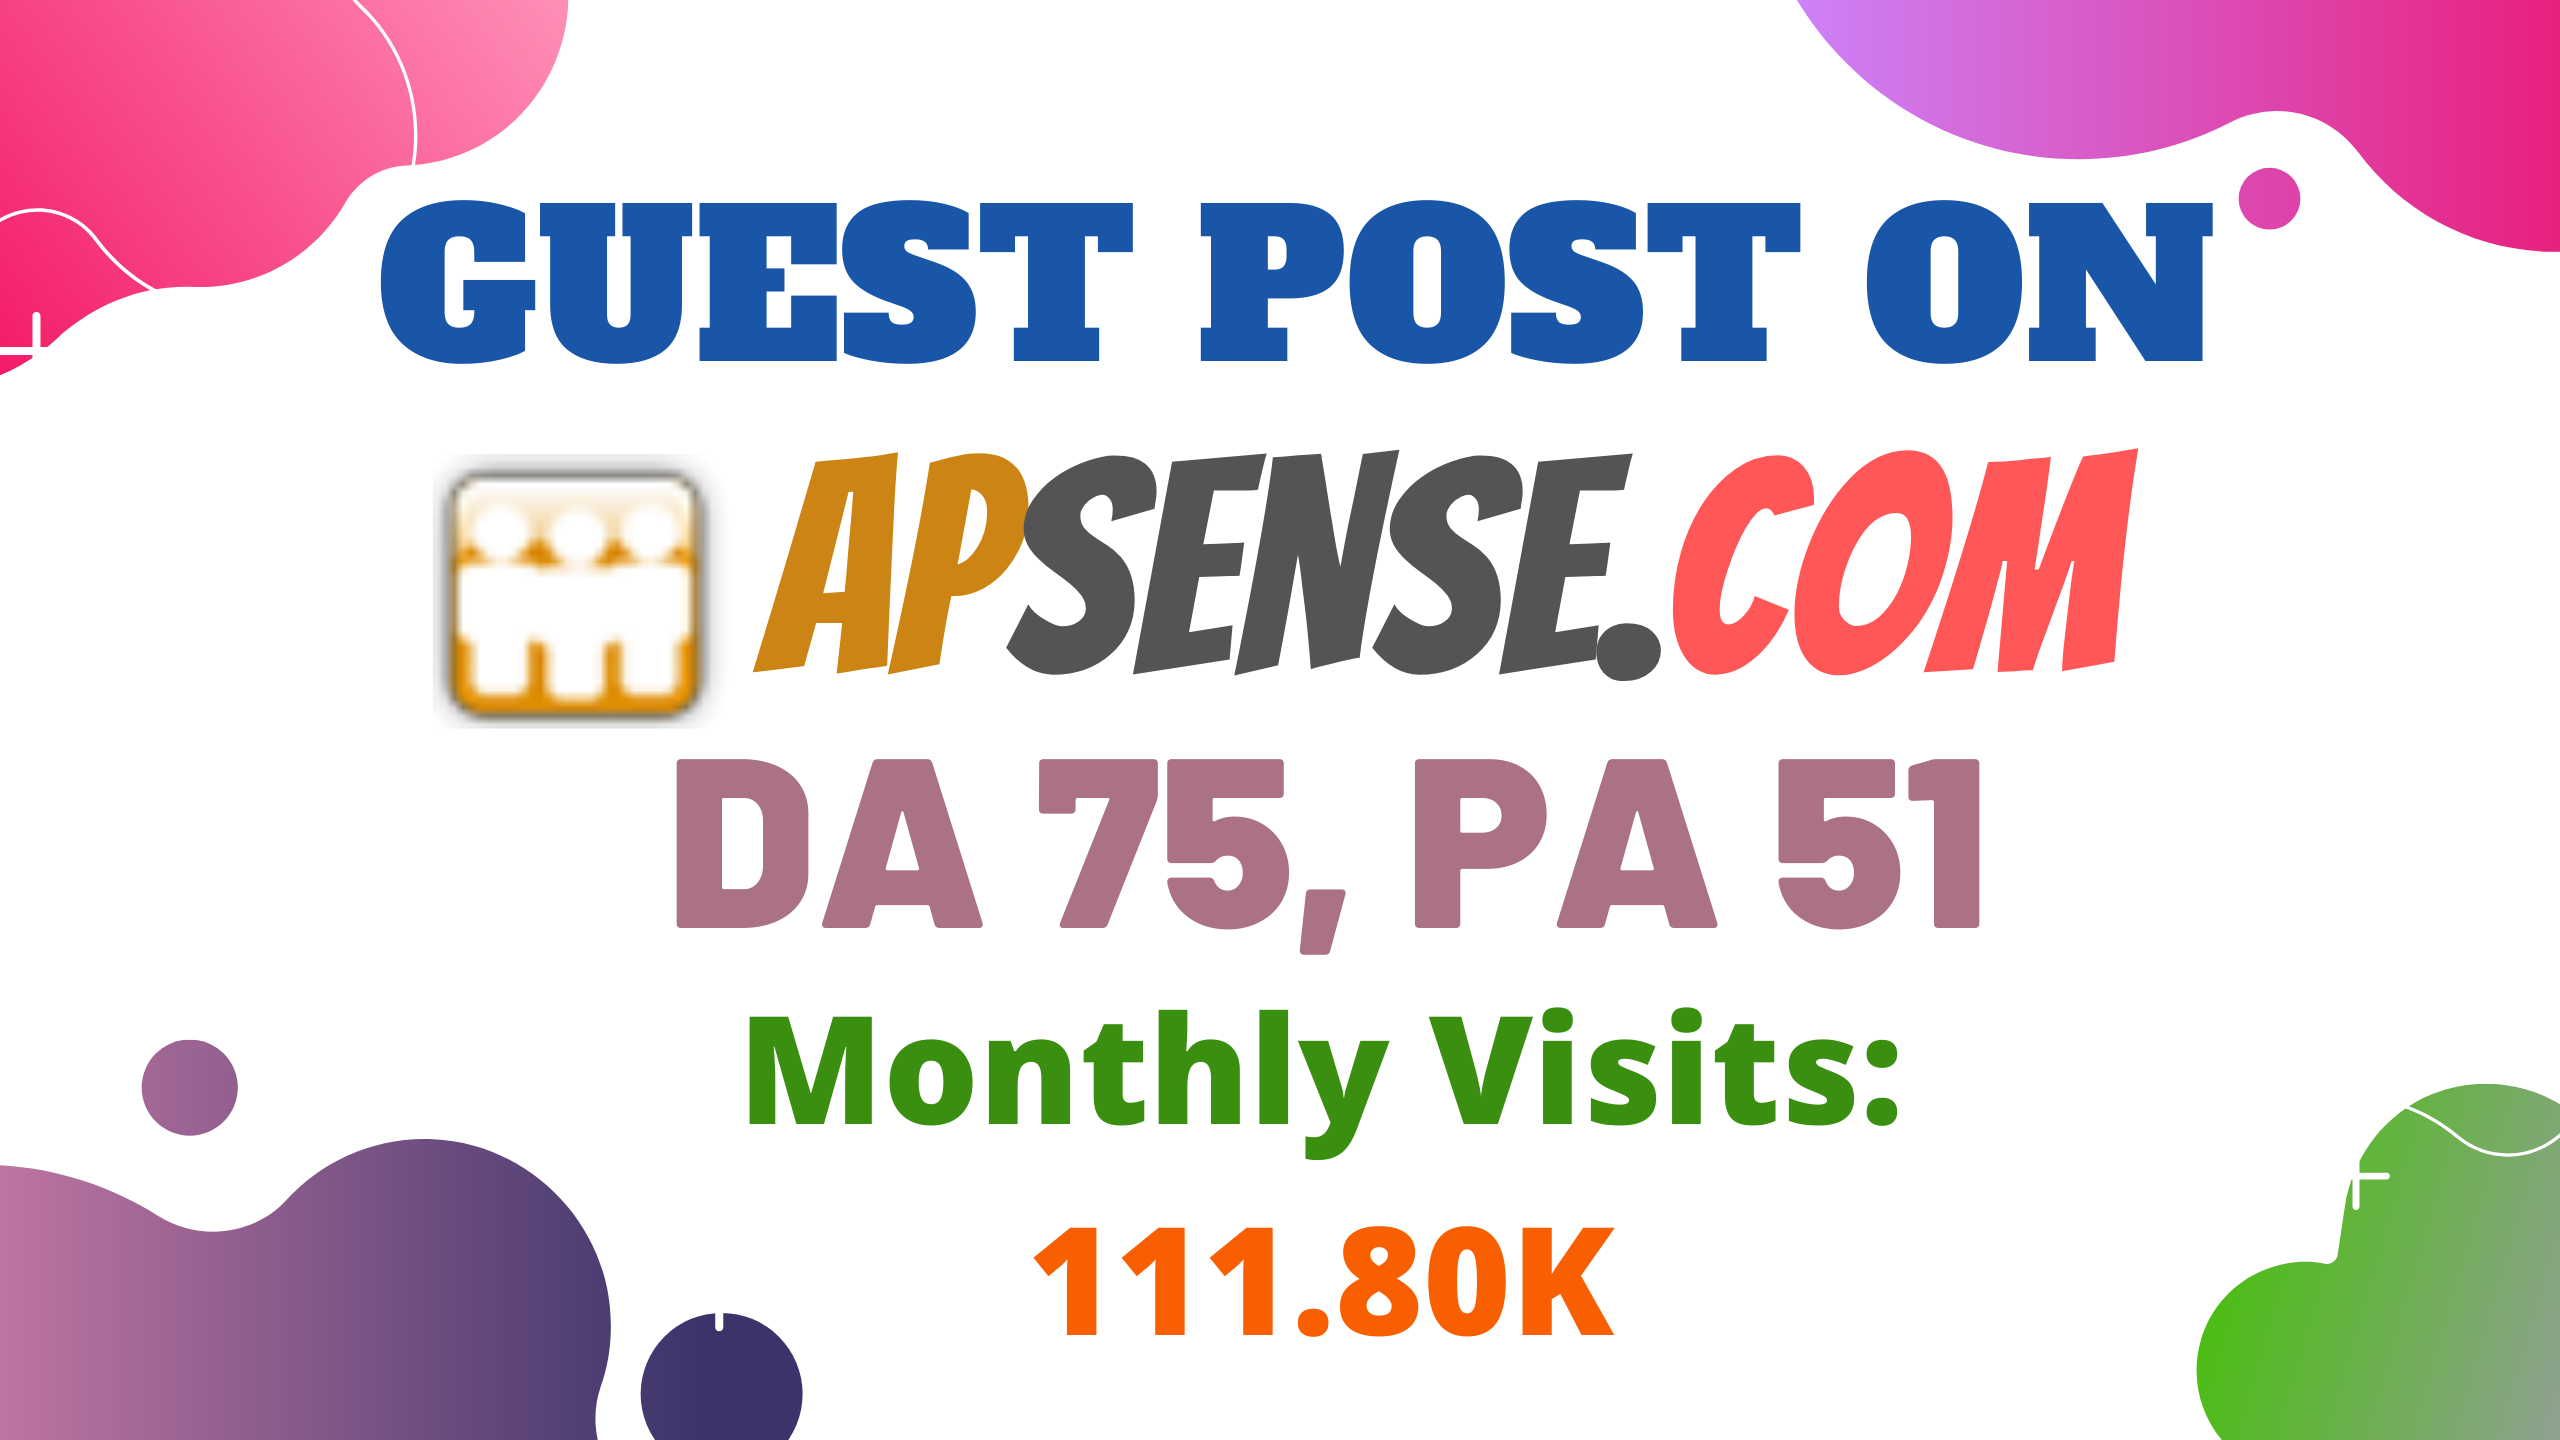 Publish Guest Post On High DA75 Business Networking Blog Apsense. com